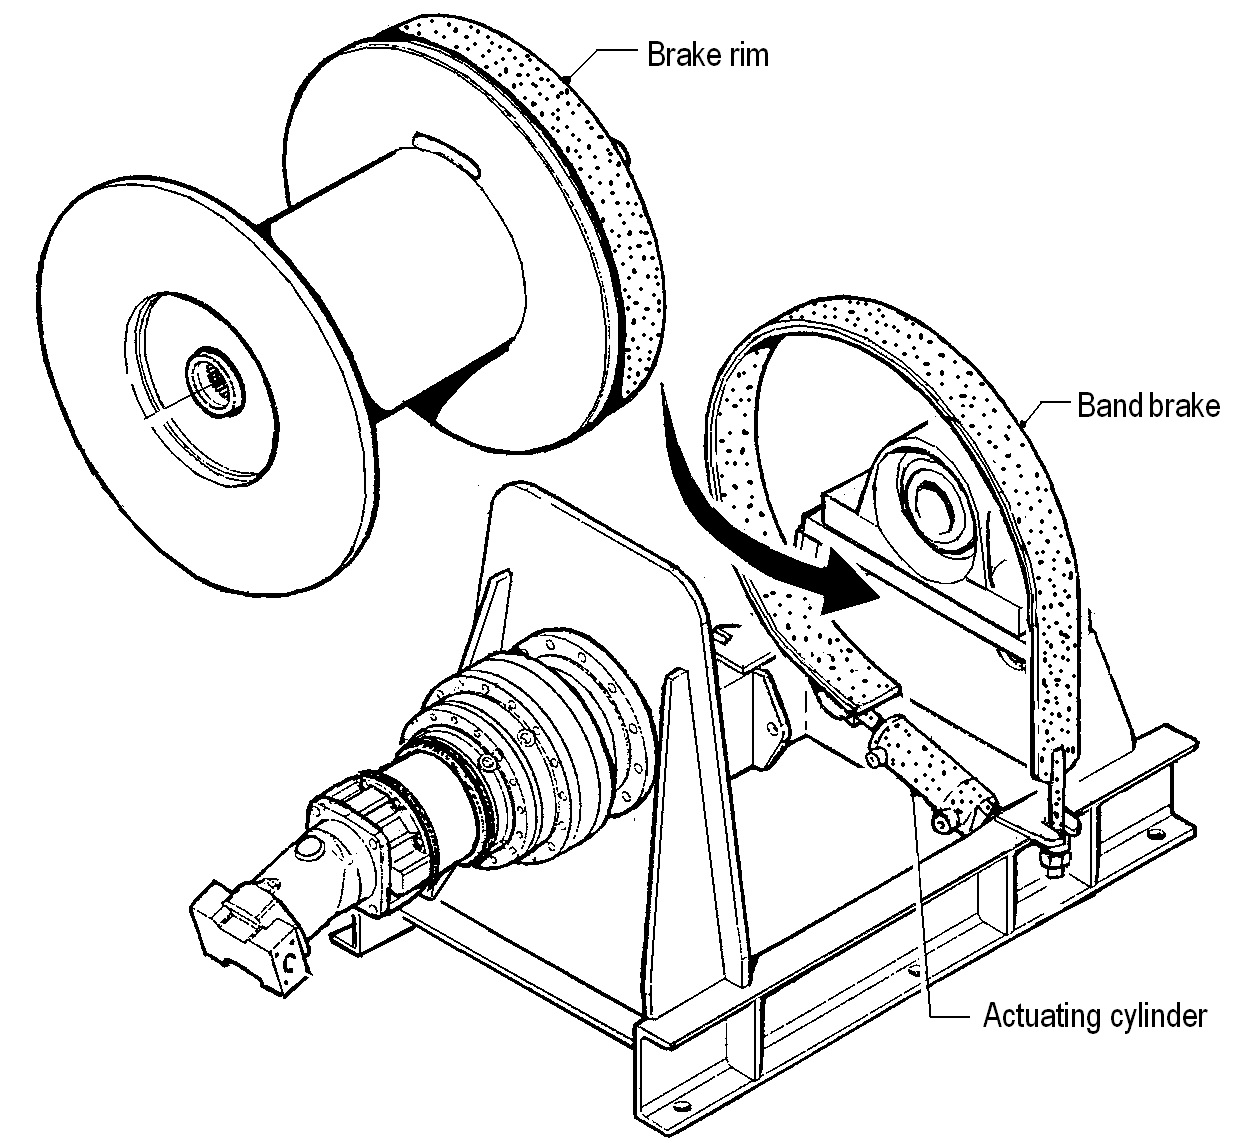 hight resolution of about winches figure 14 typical automatic bandbrake hydraulically actuated